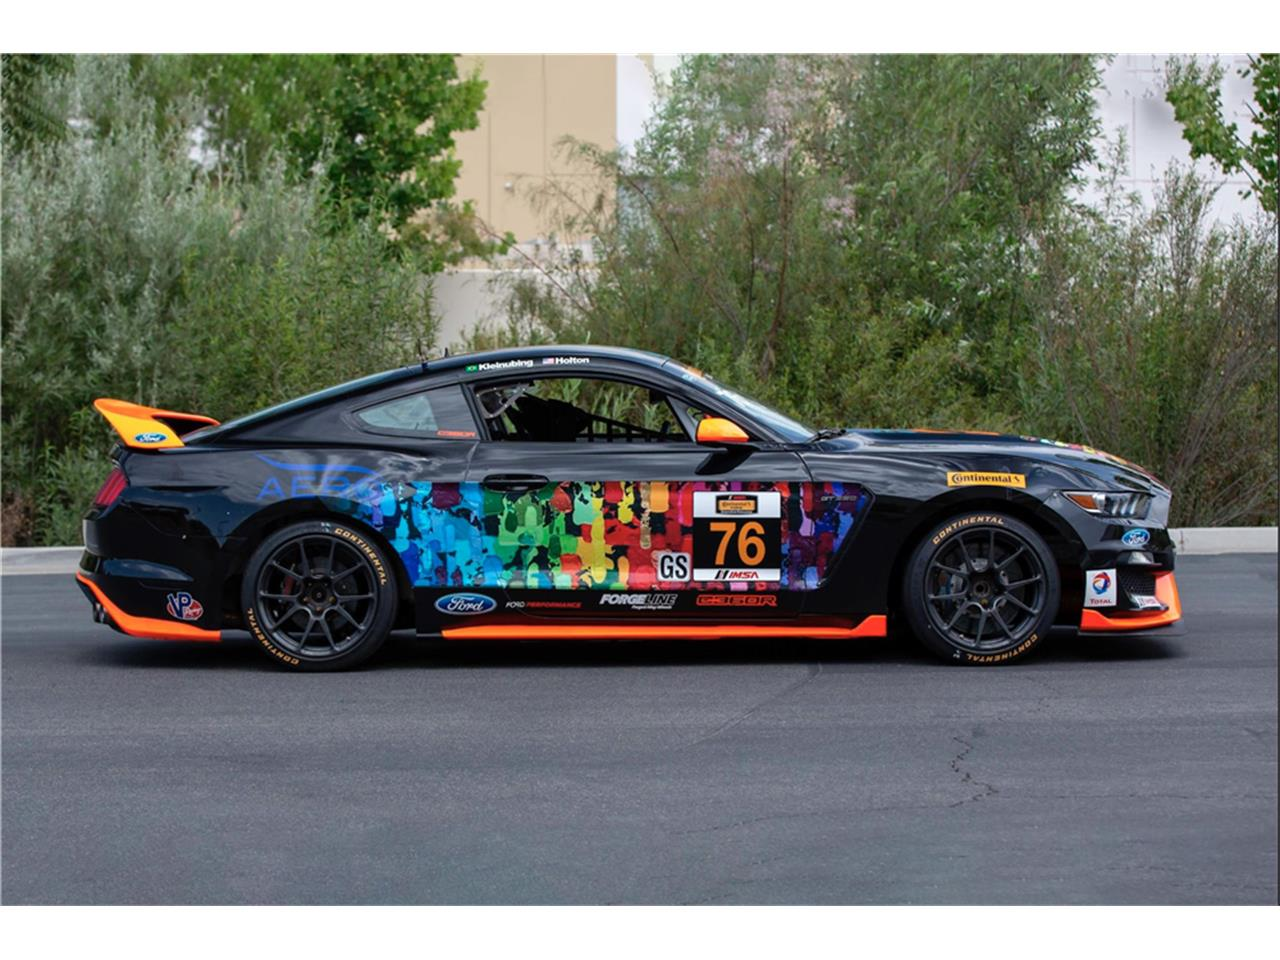 2015 Ford MUSTANG GT350R-C for Sale   ClassicCars.com   CC ...